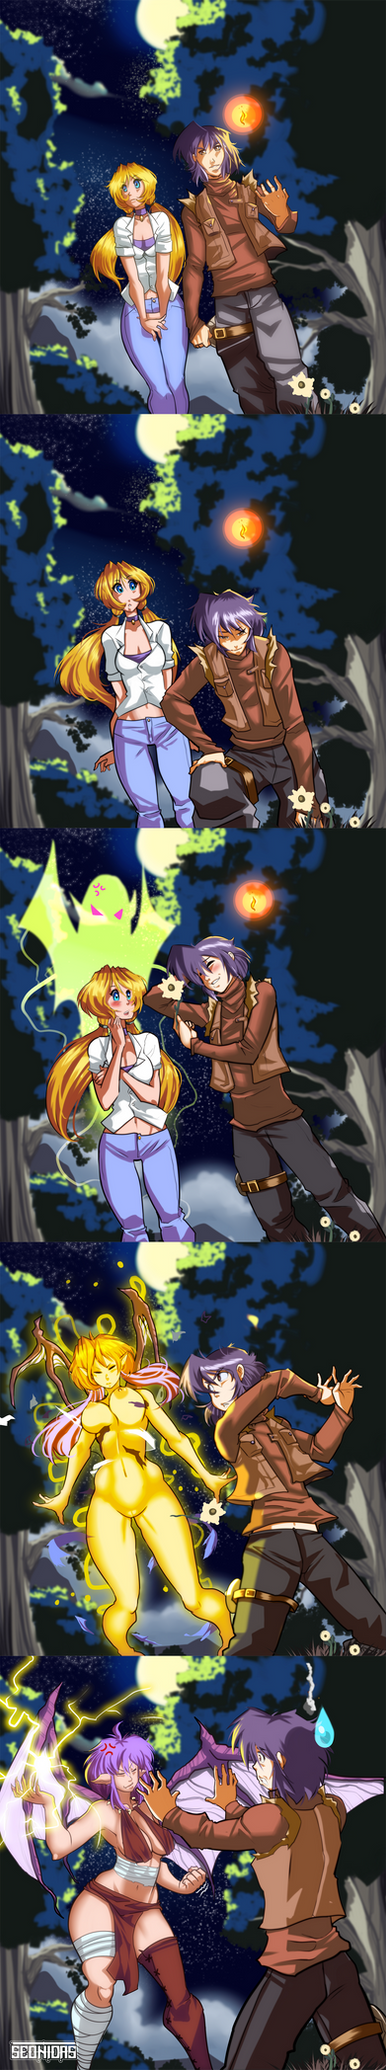 Avery and Reist moment by Seonidas